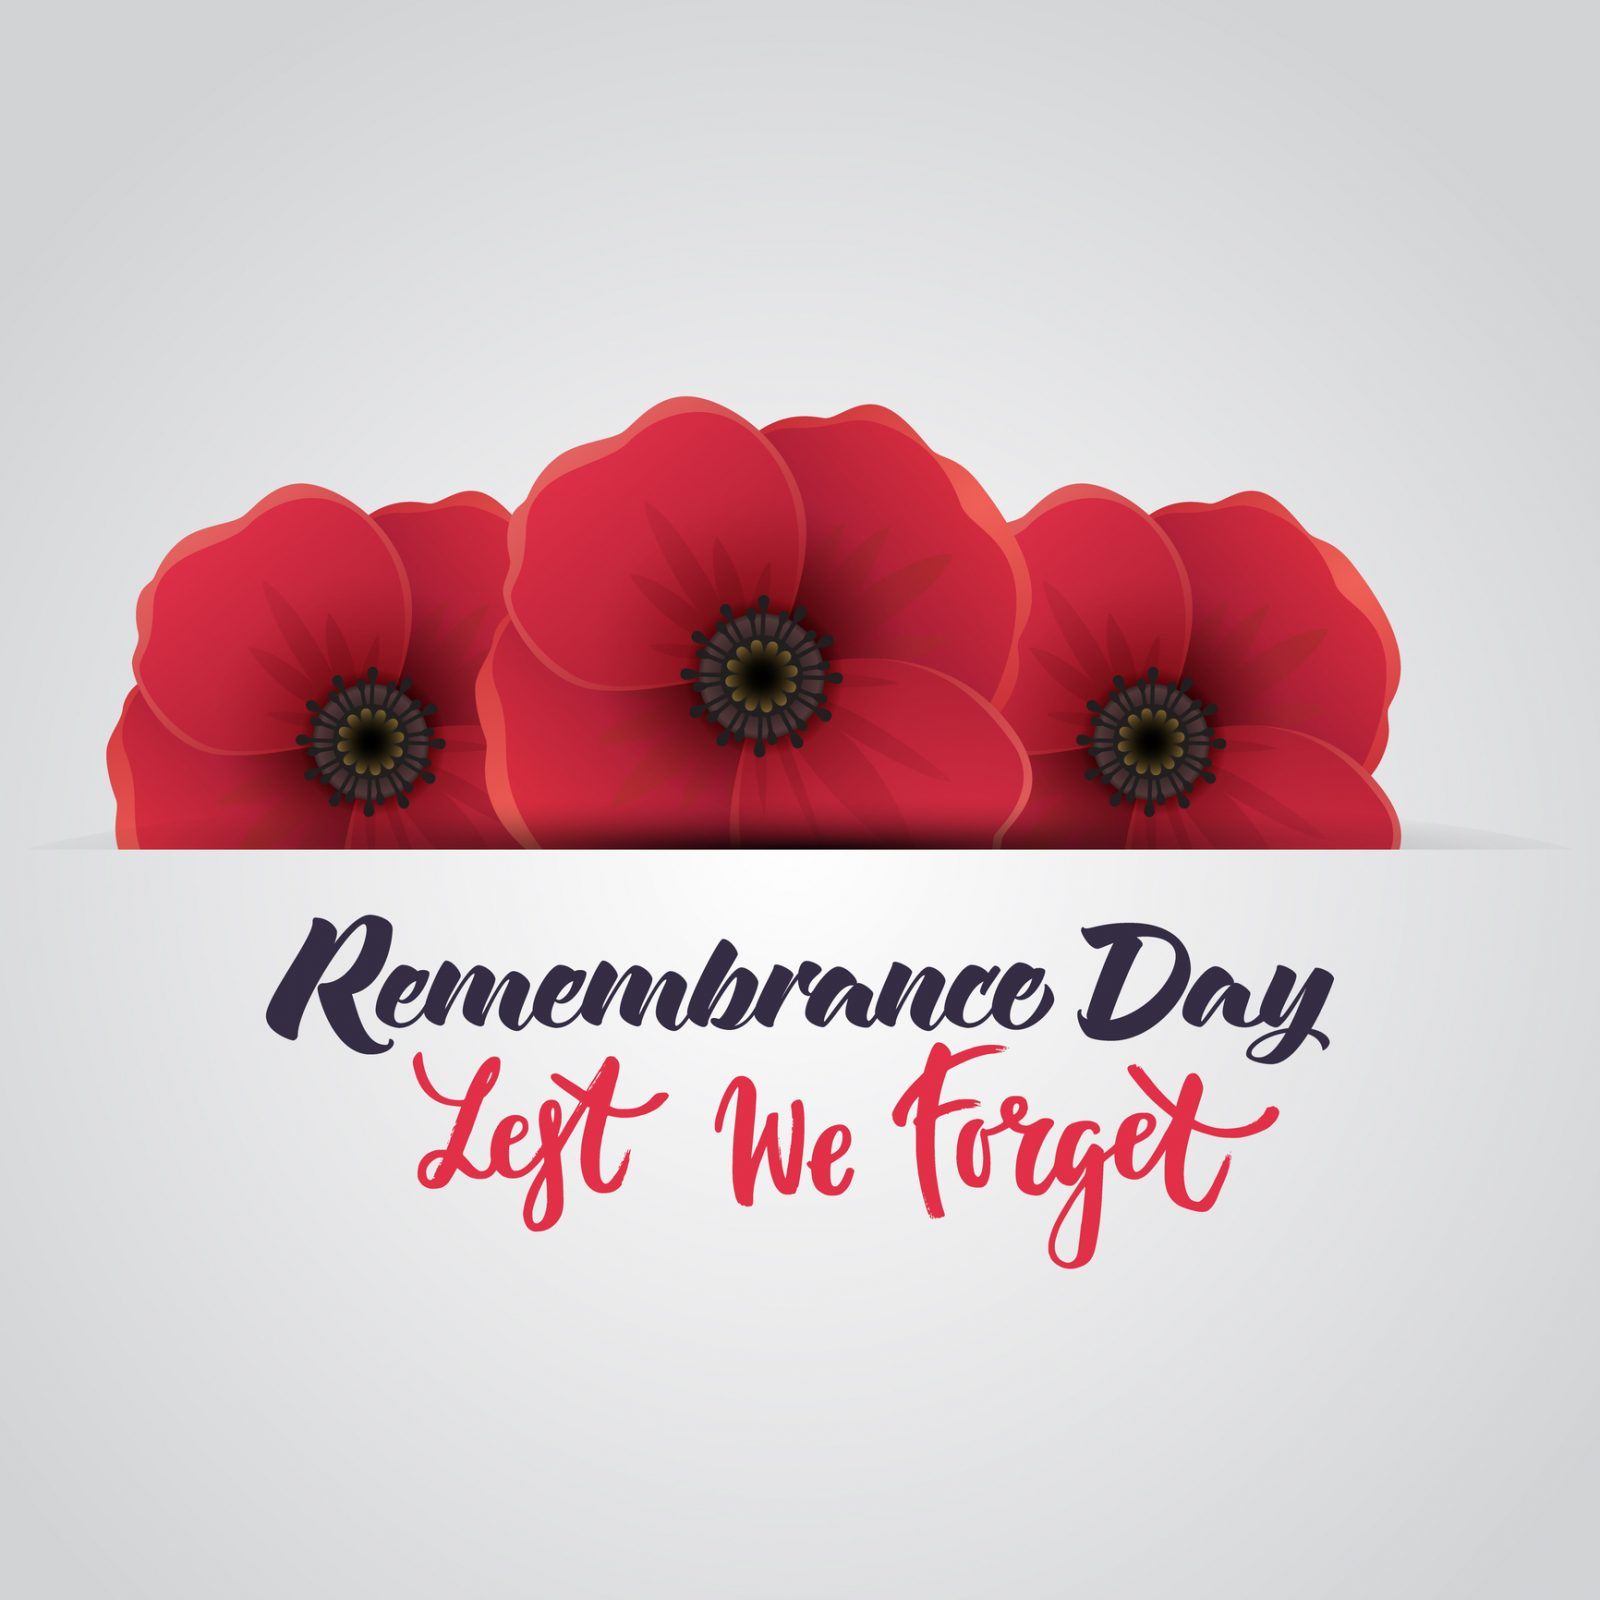 Remembrance Day to be marked at ceremonies across Niagara – The Brock News